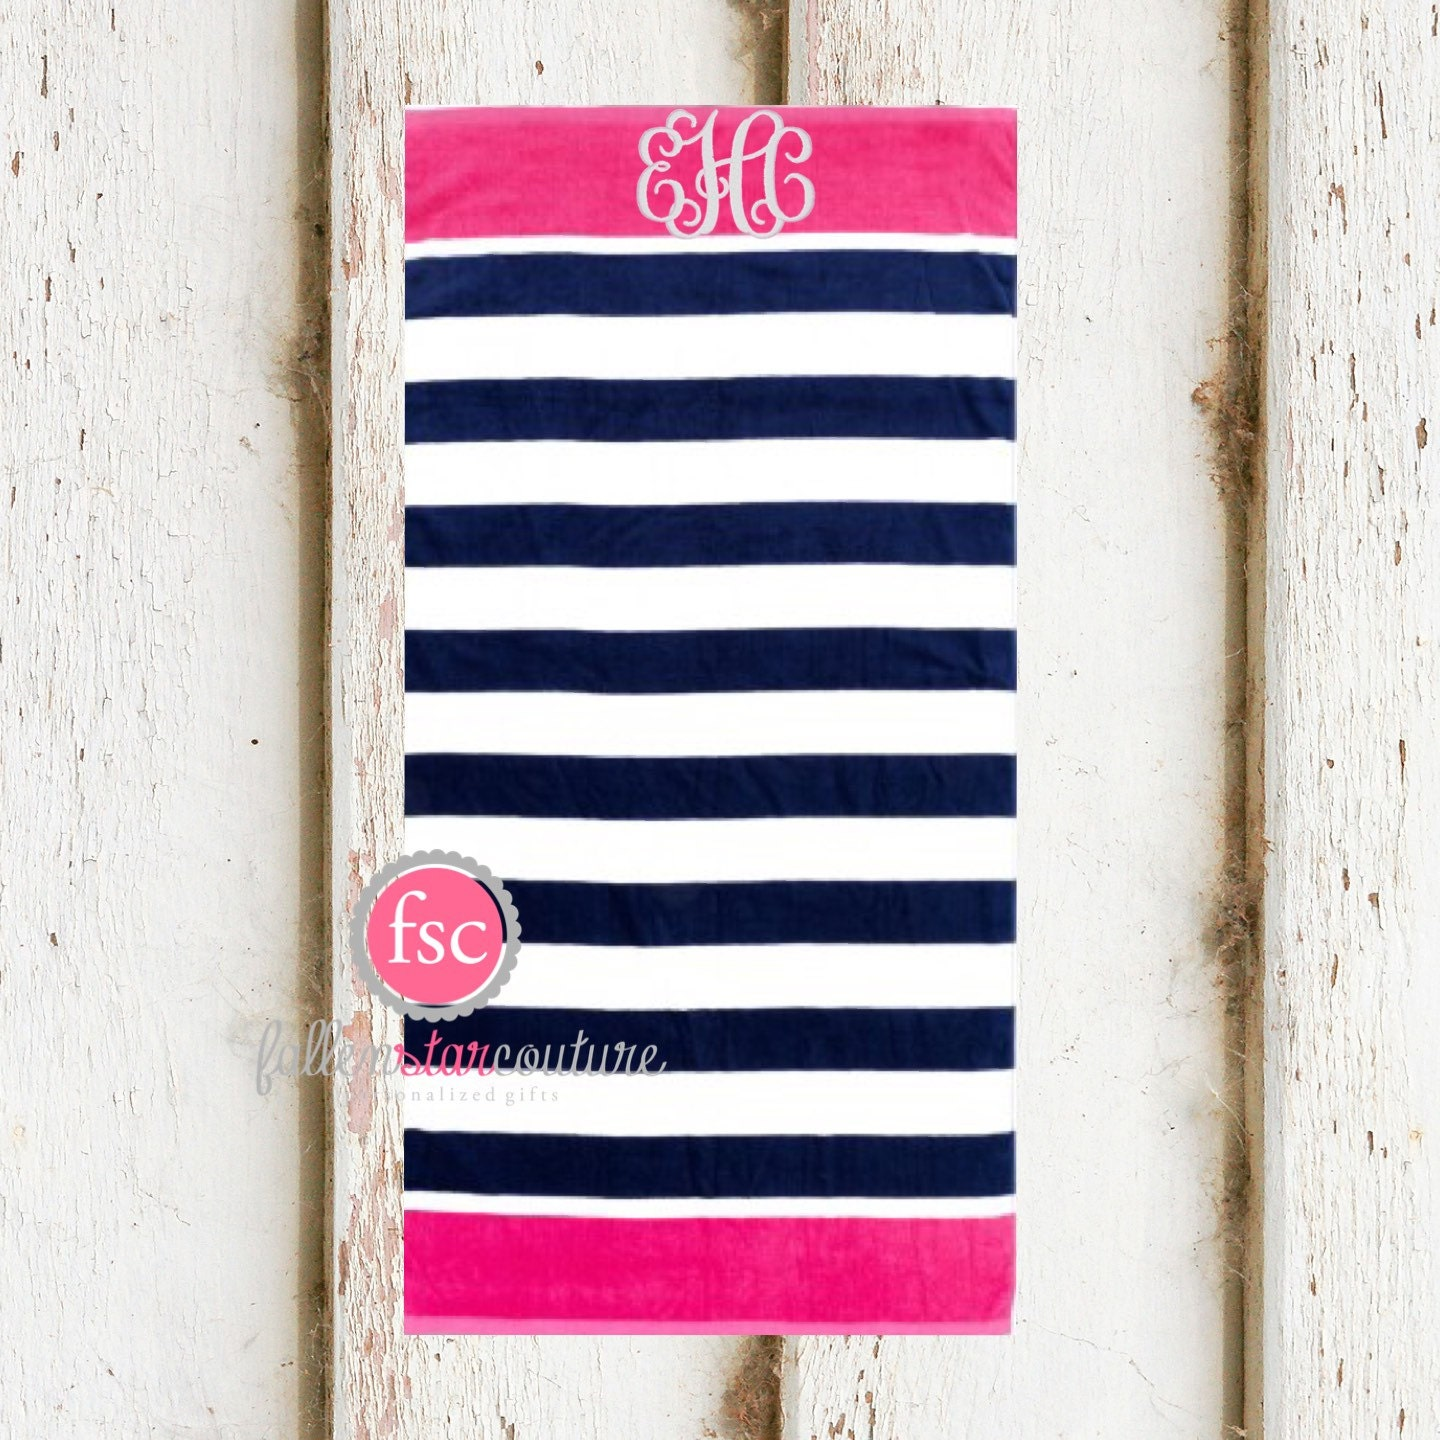 Personalized Towels: Monogrammed Beach Towels Personalized Beach Towels